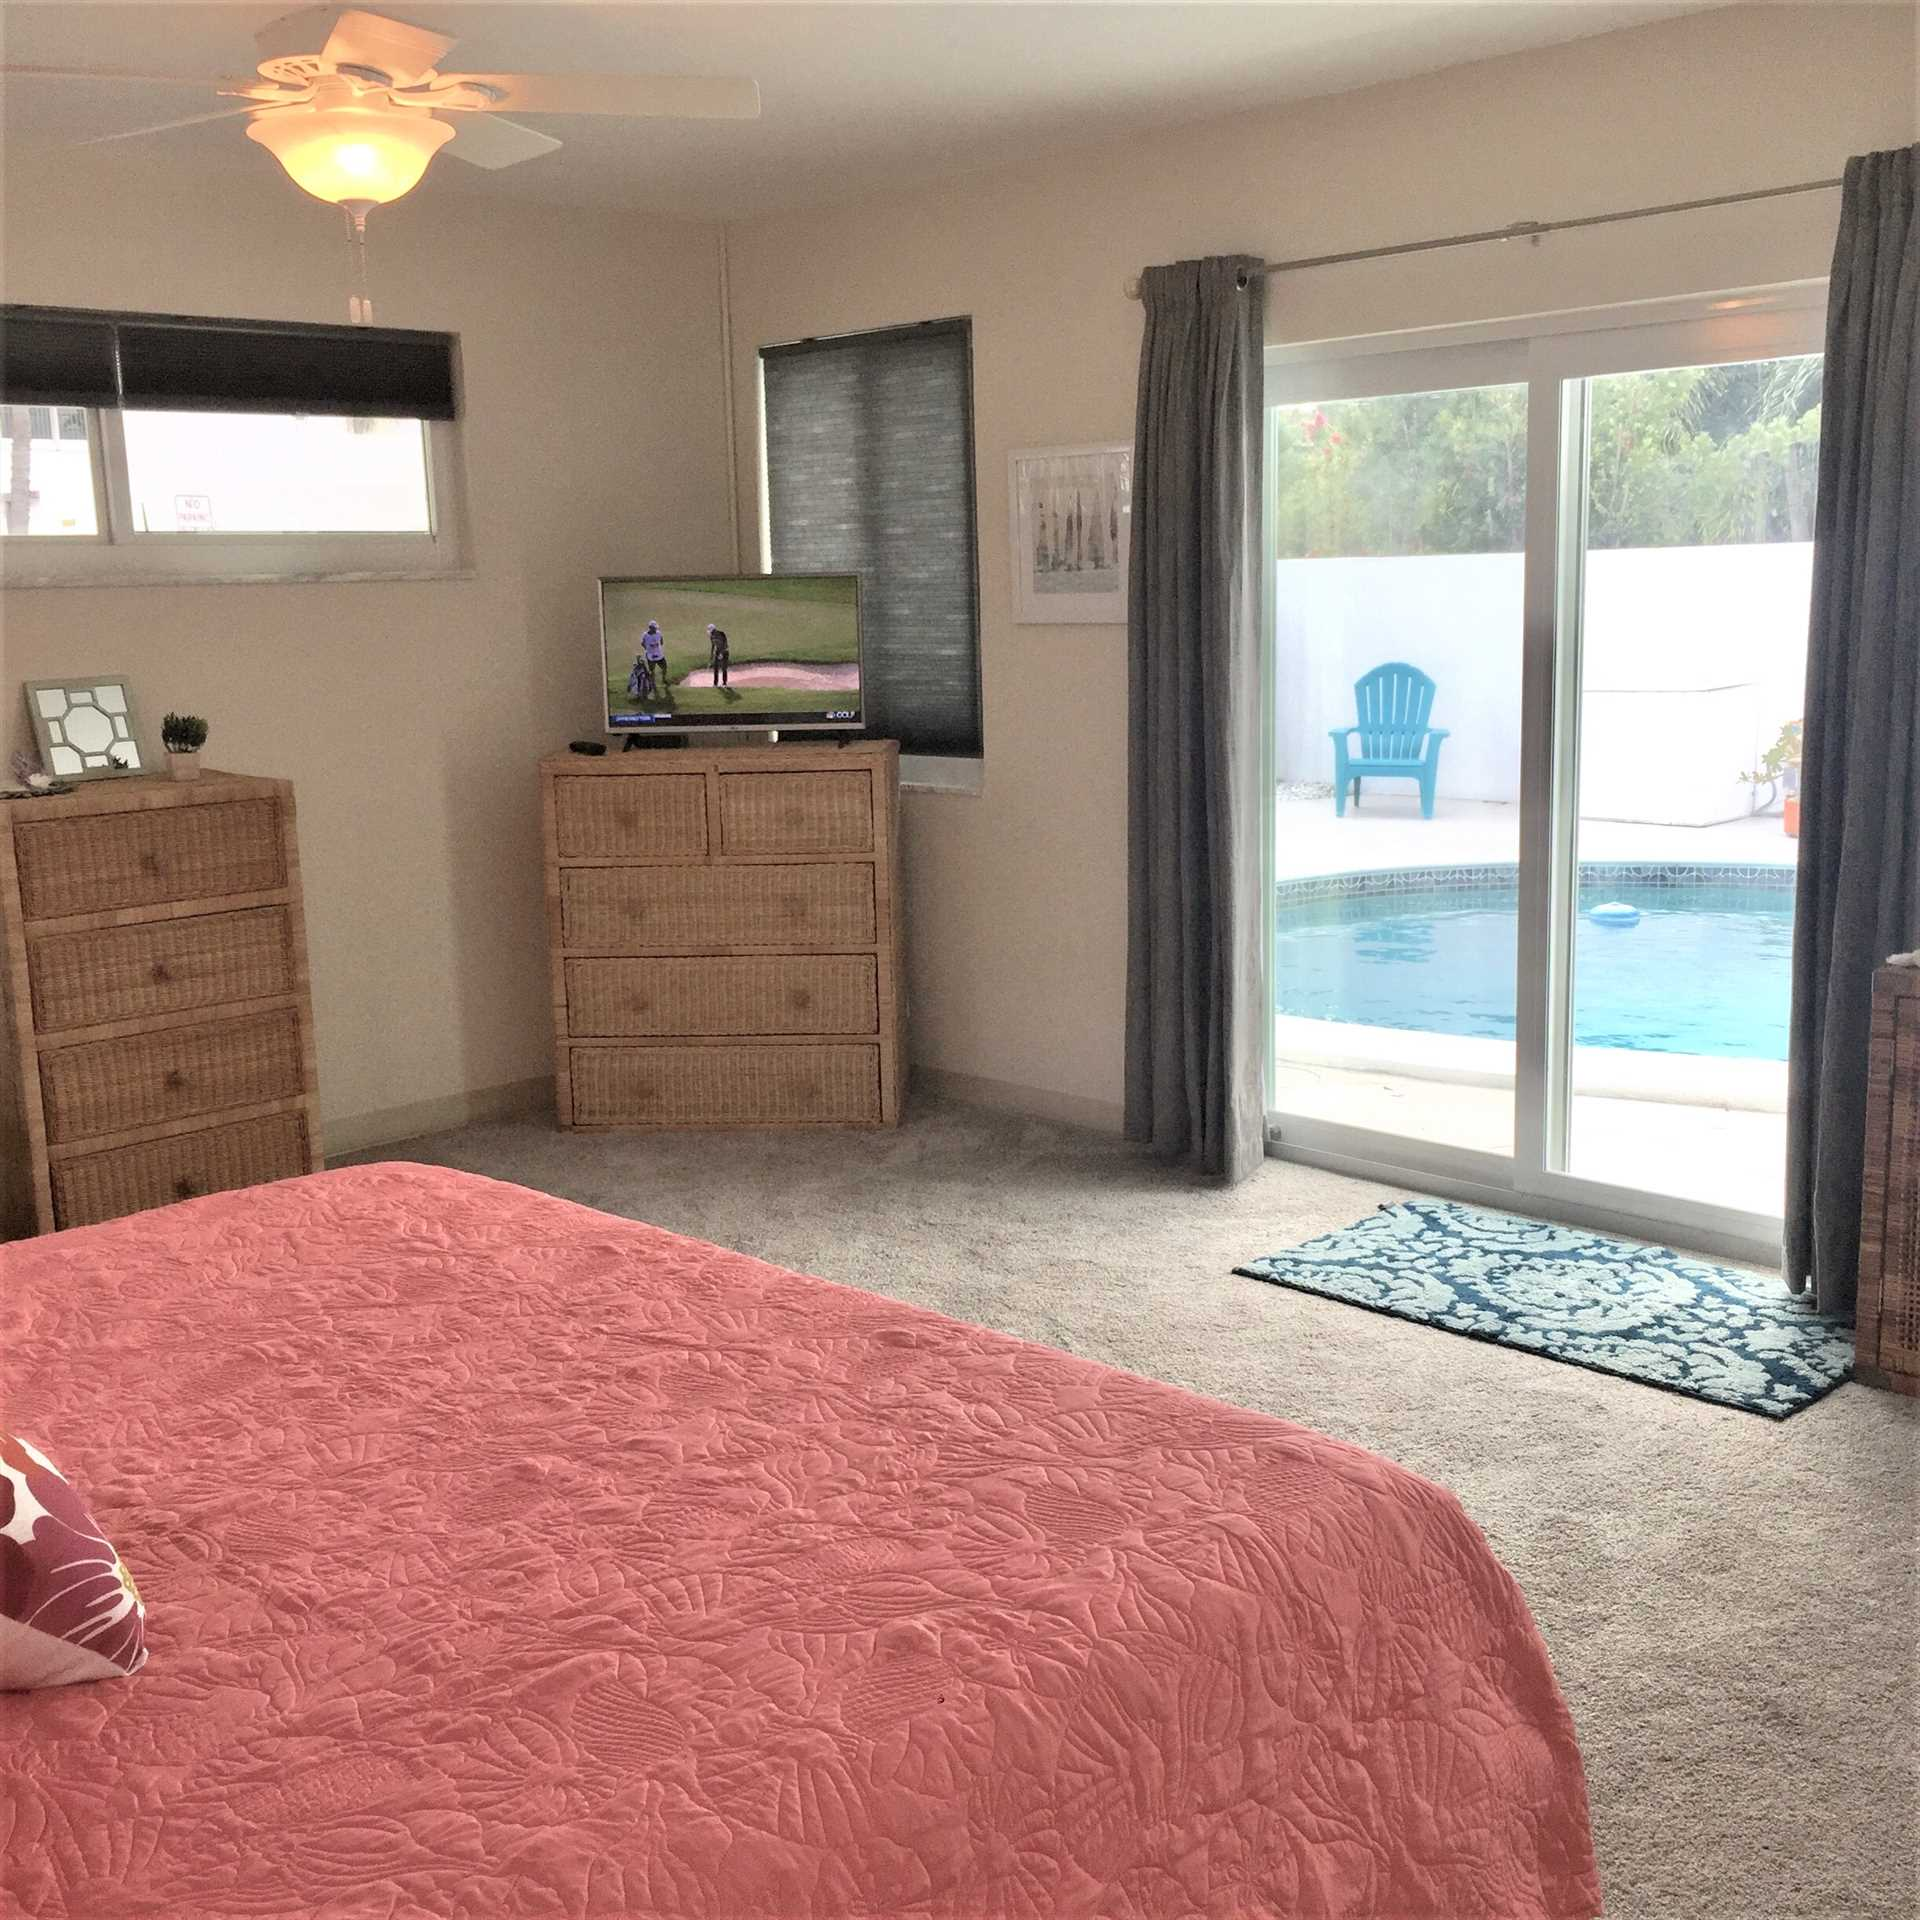 Third bedroom has HDTV and opens to the pool deck.